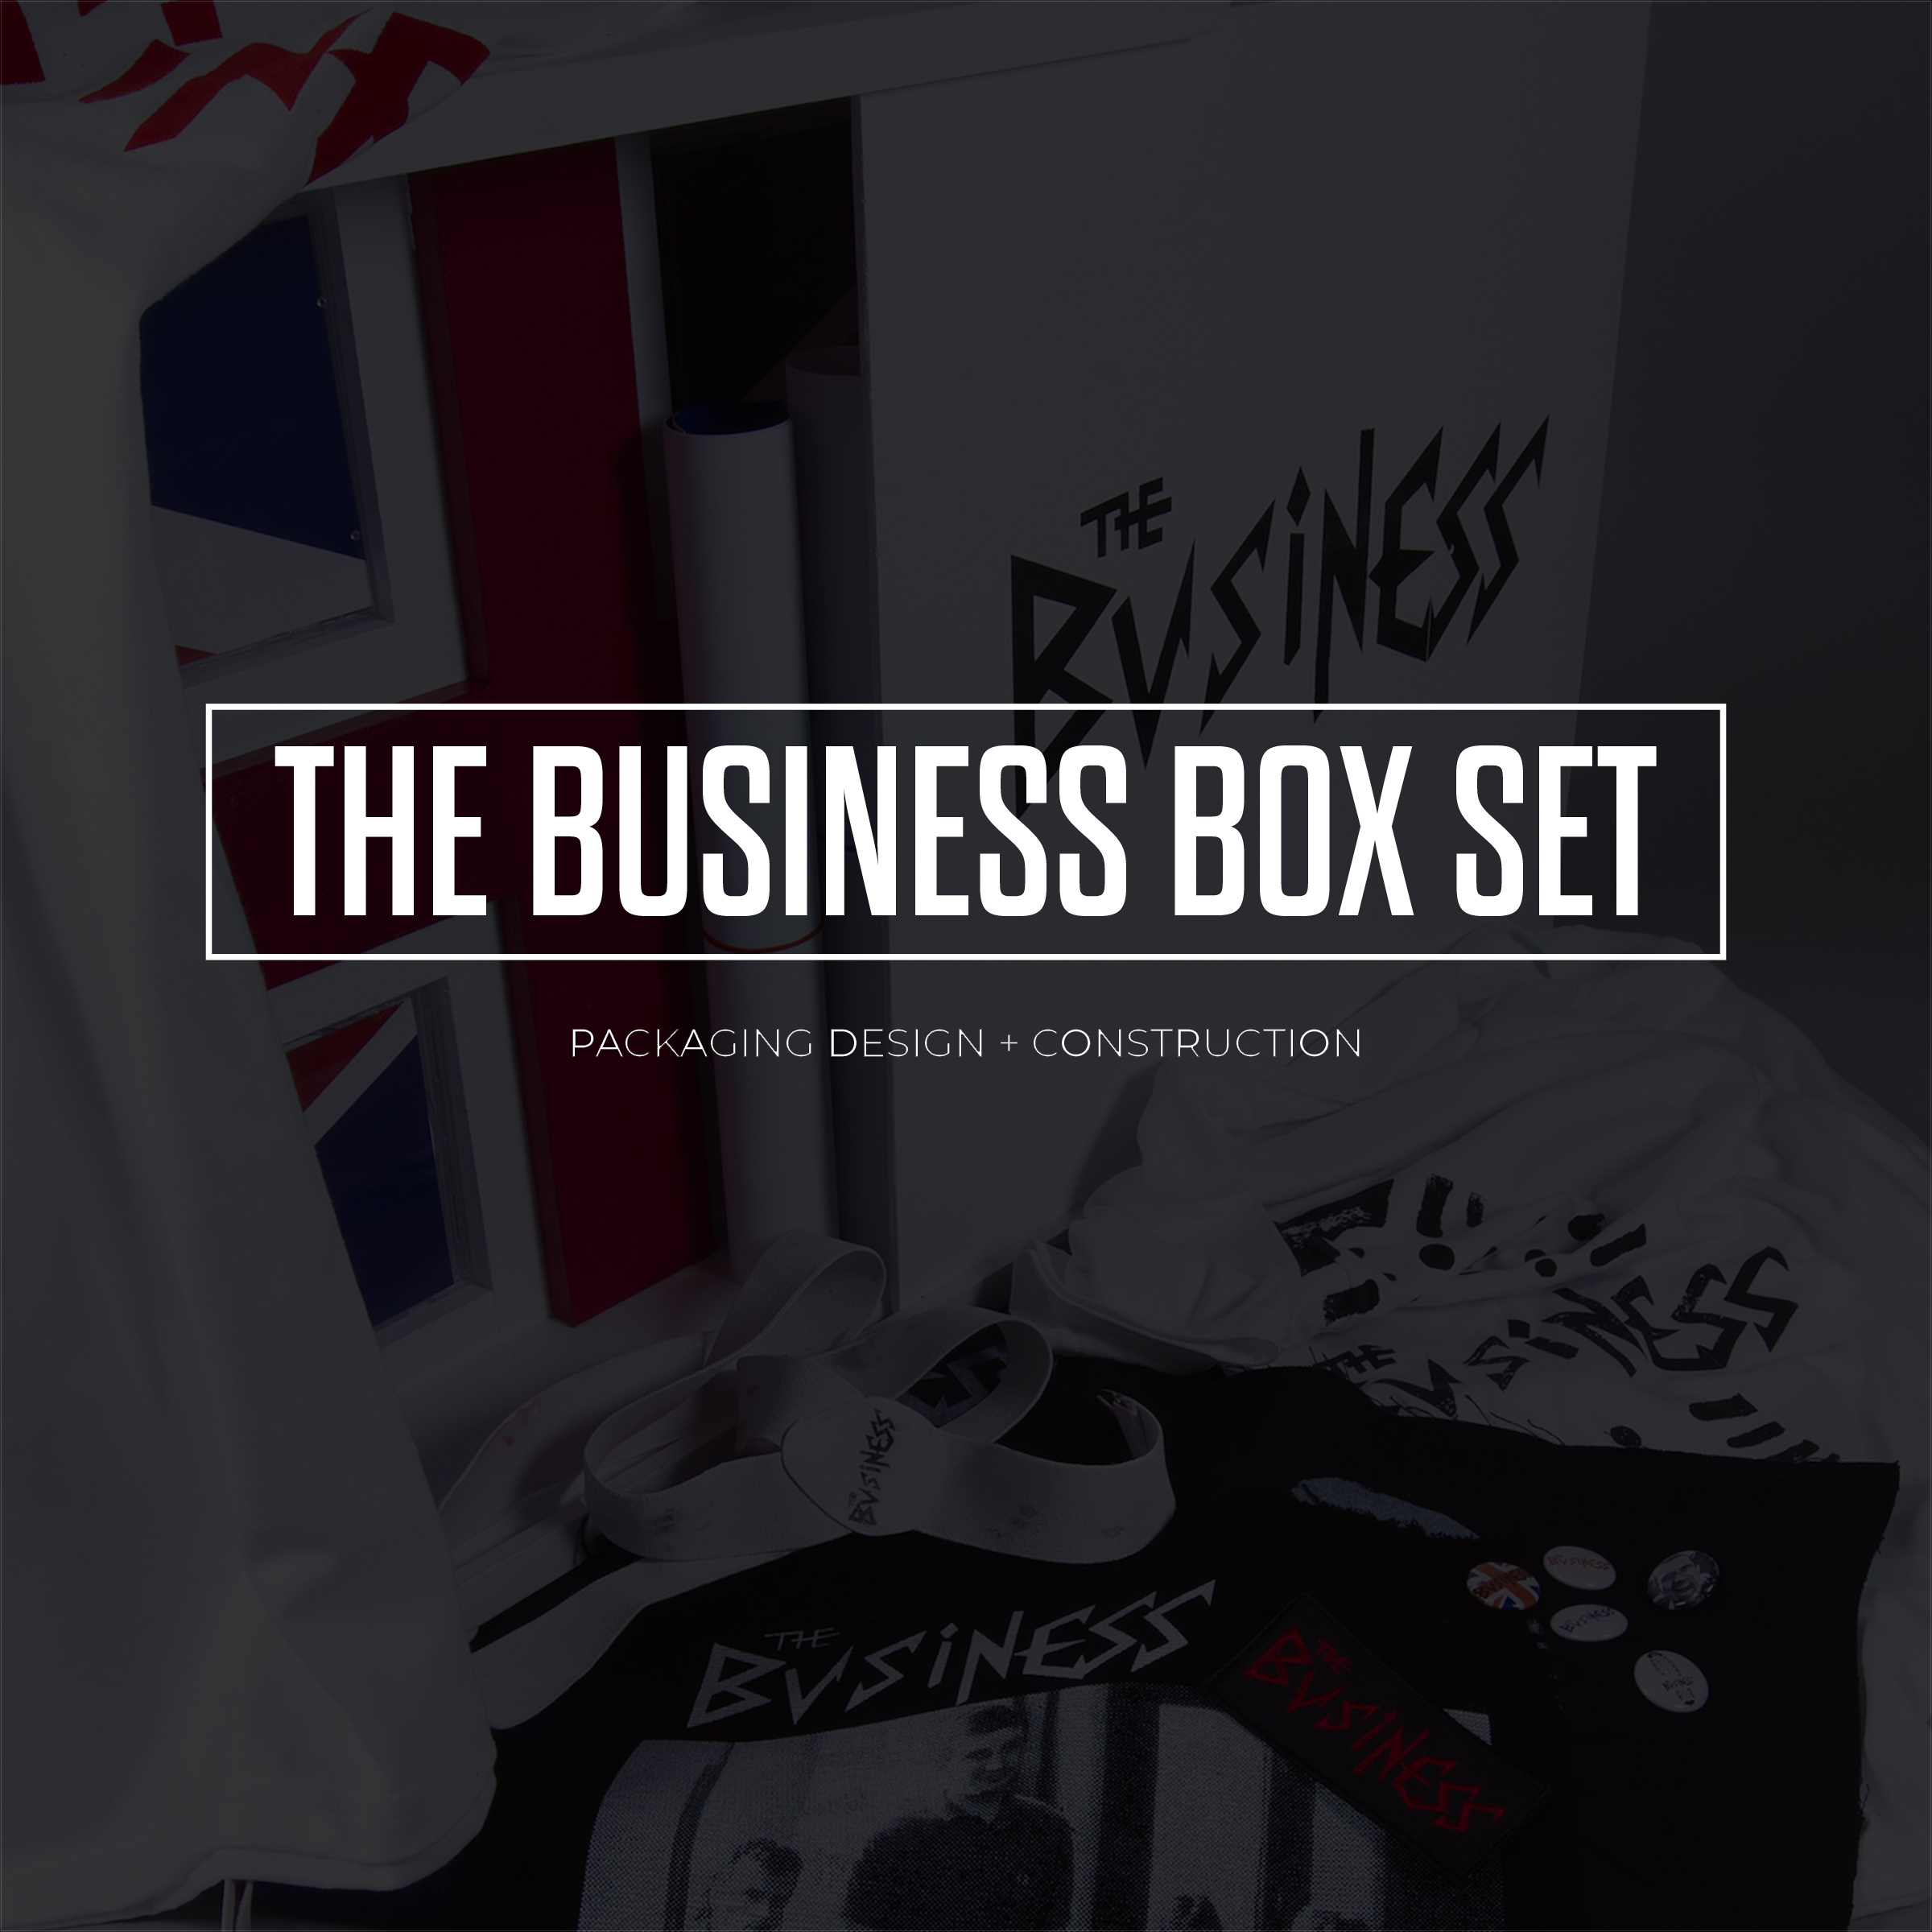 The Business Box Set Packaging